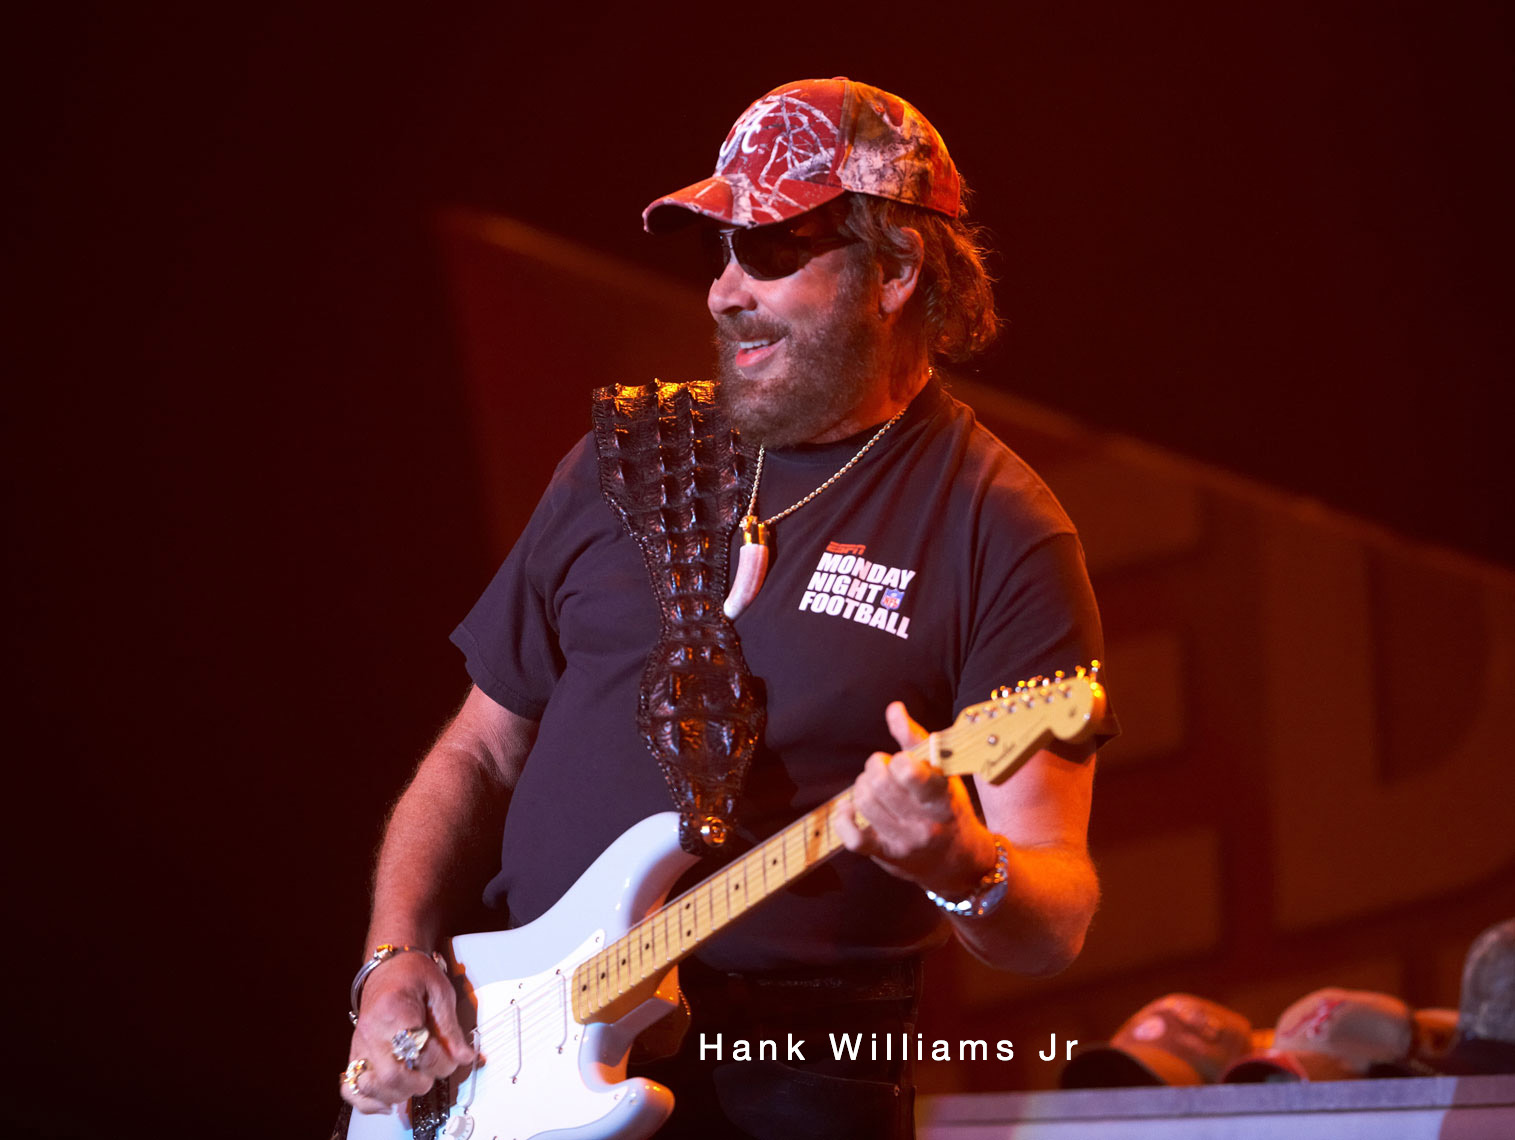 Hank-Williams-Jr-2